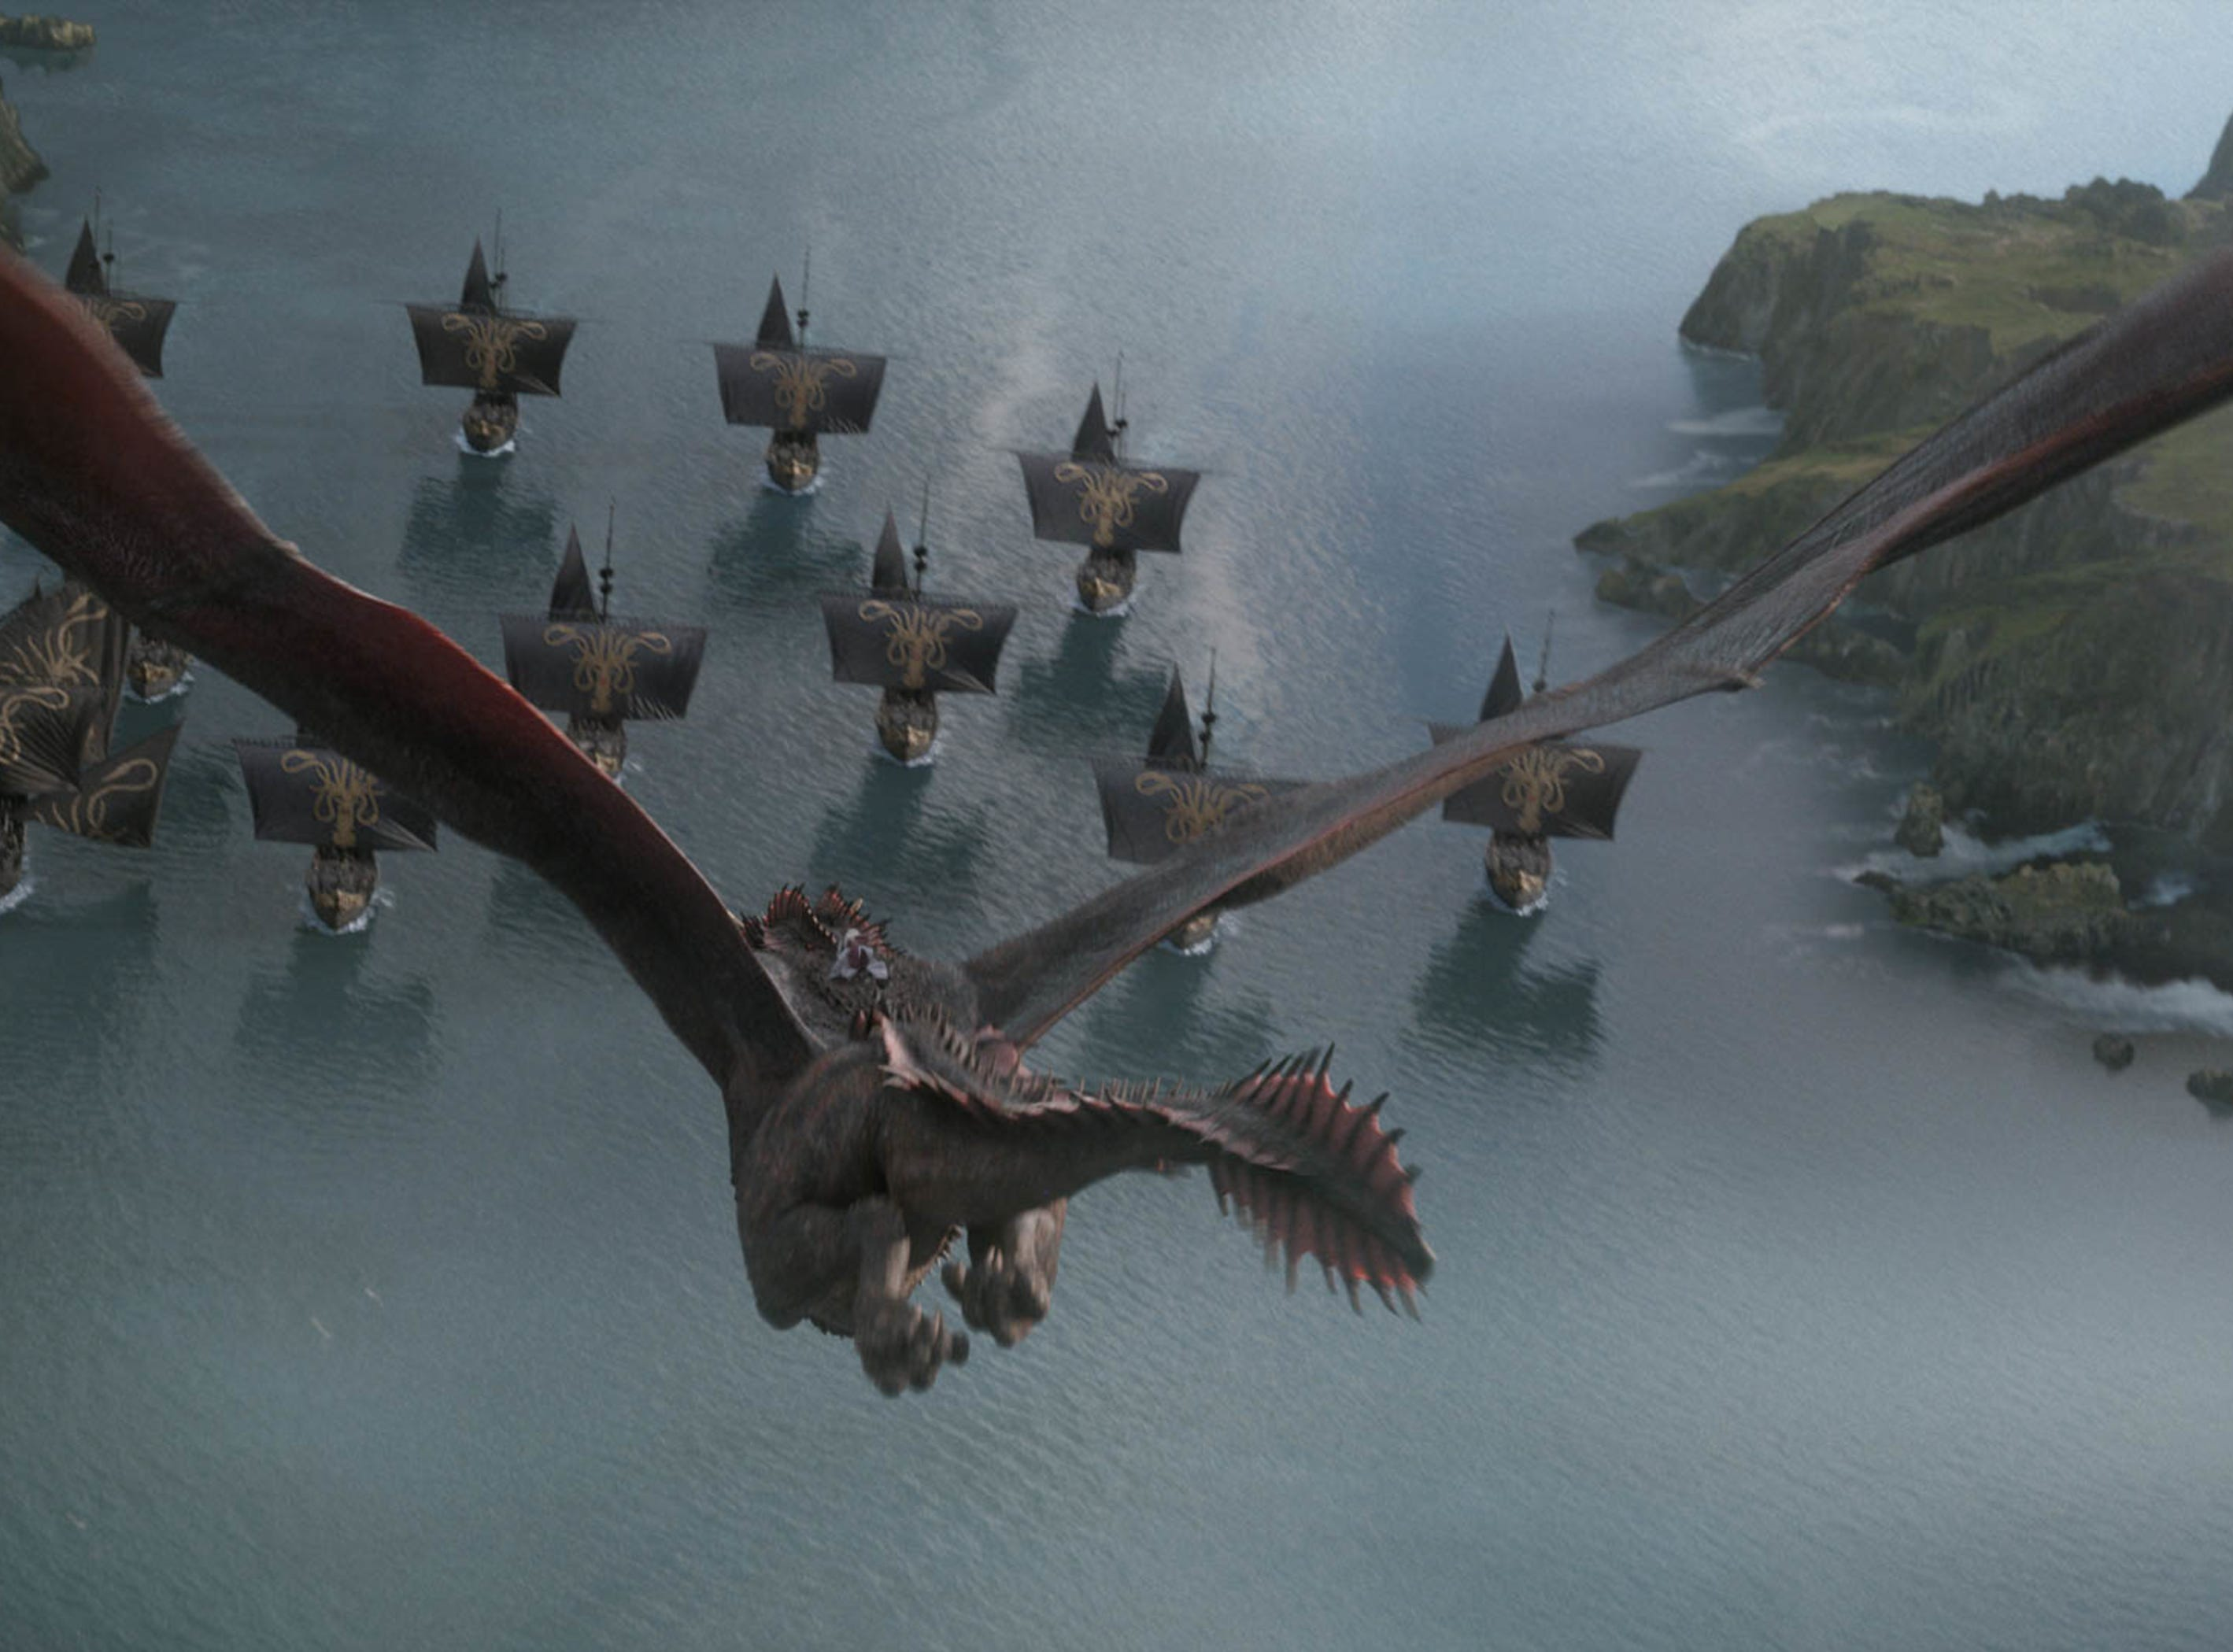 Dany's dragon responds to a sneak attack by Euron Greyjoy's forces in 'The Last of The Starks' episode of 'Game of Thrones.'